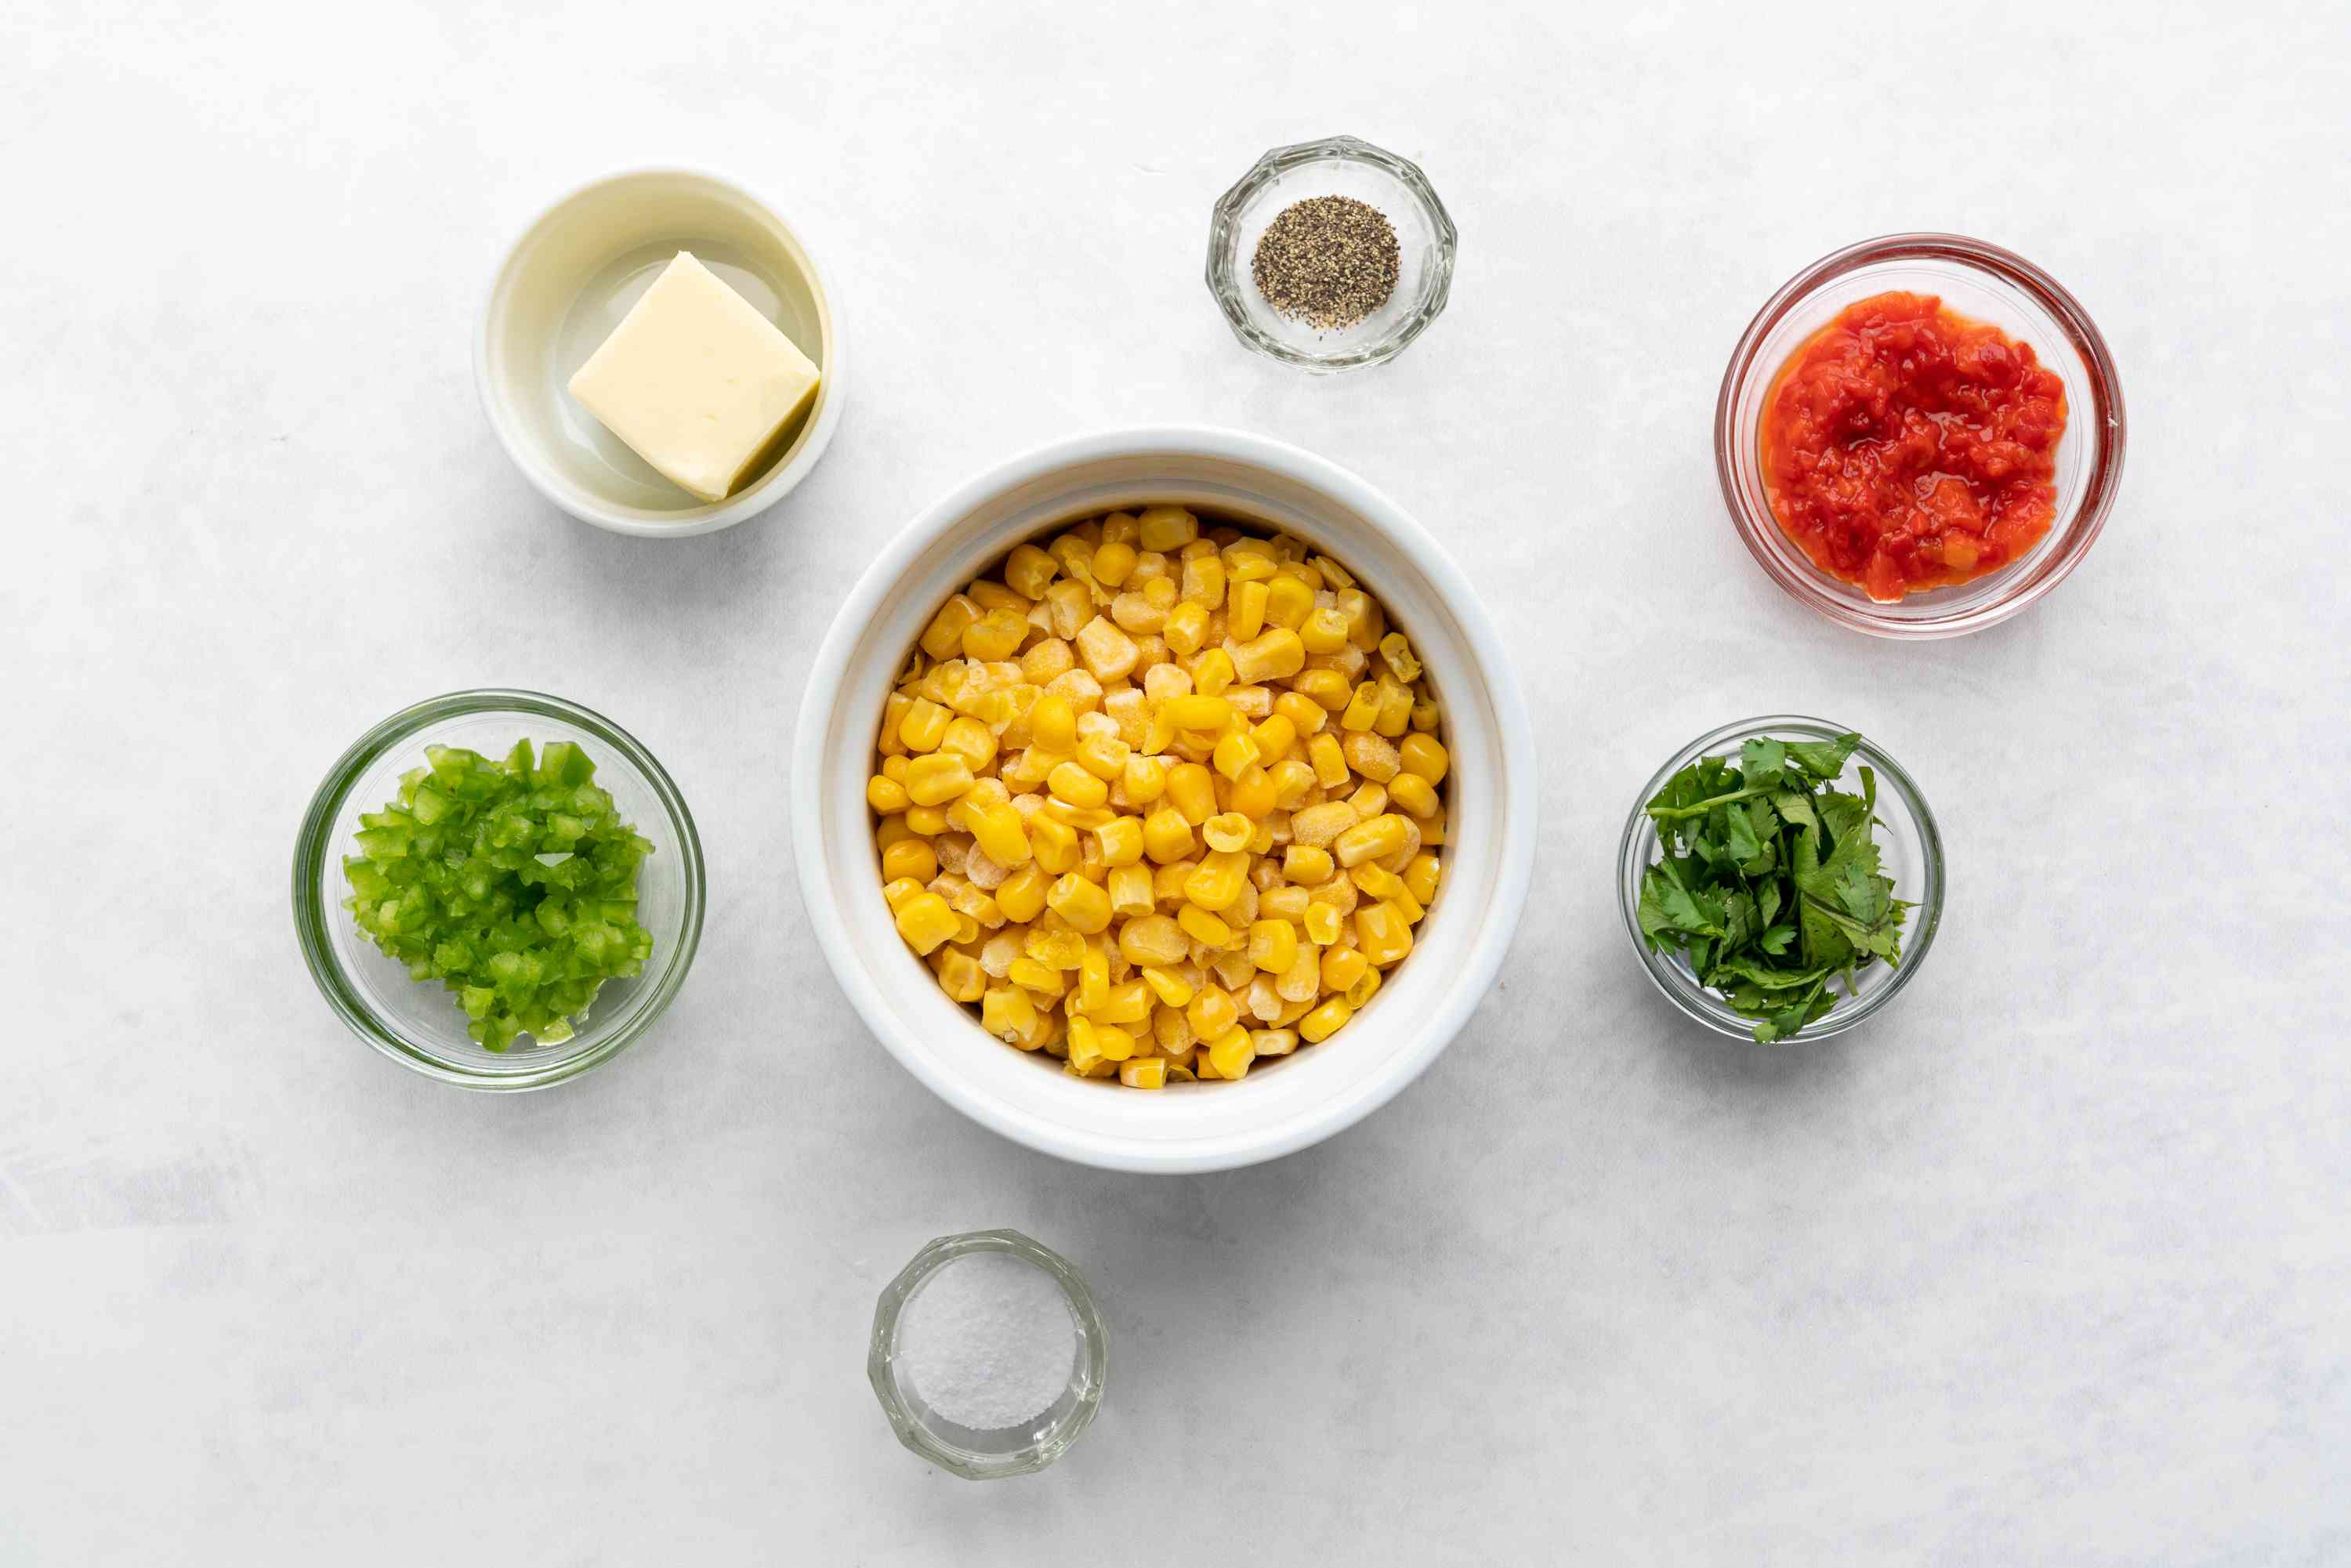 Mexican-Style Corn With Peppers ingredients